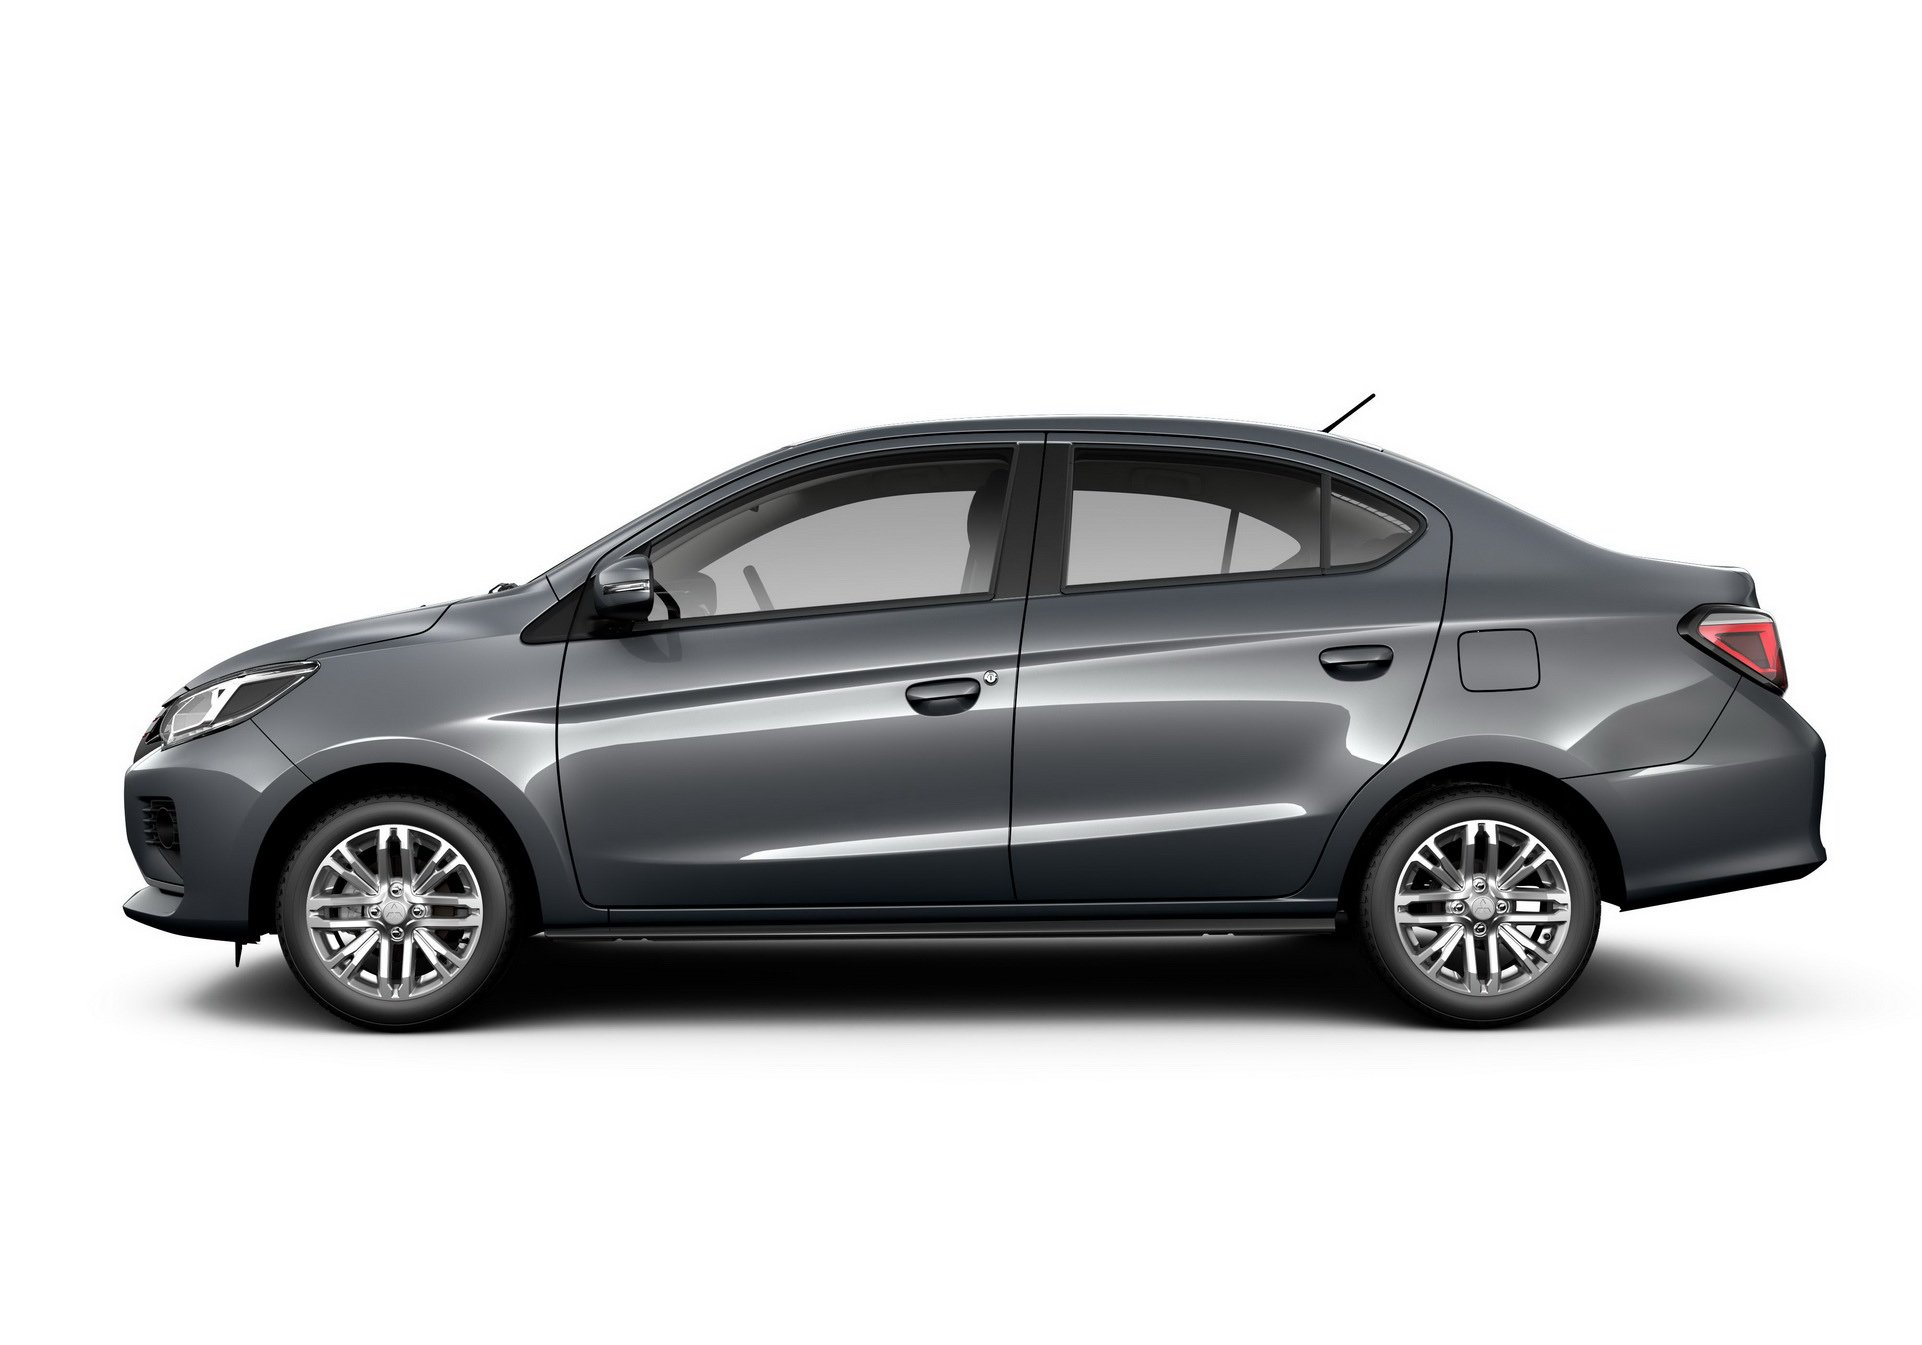 Mitsubishi-Space-Star-facelift-2020-24